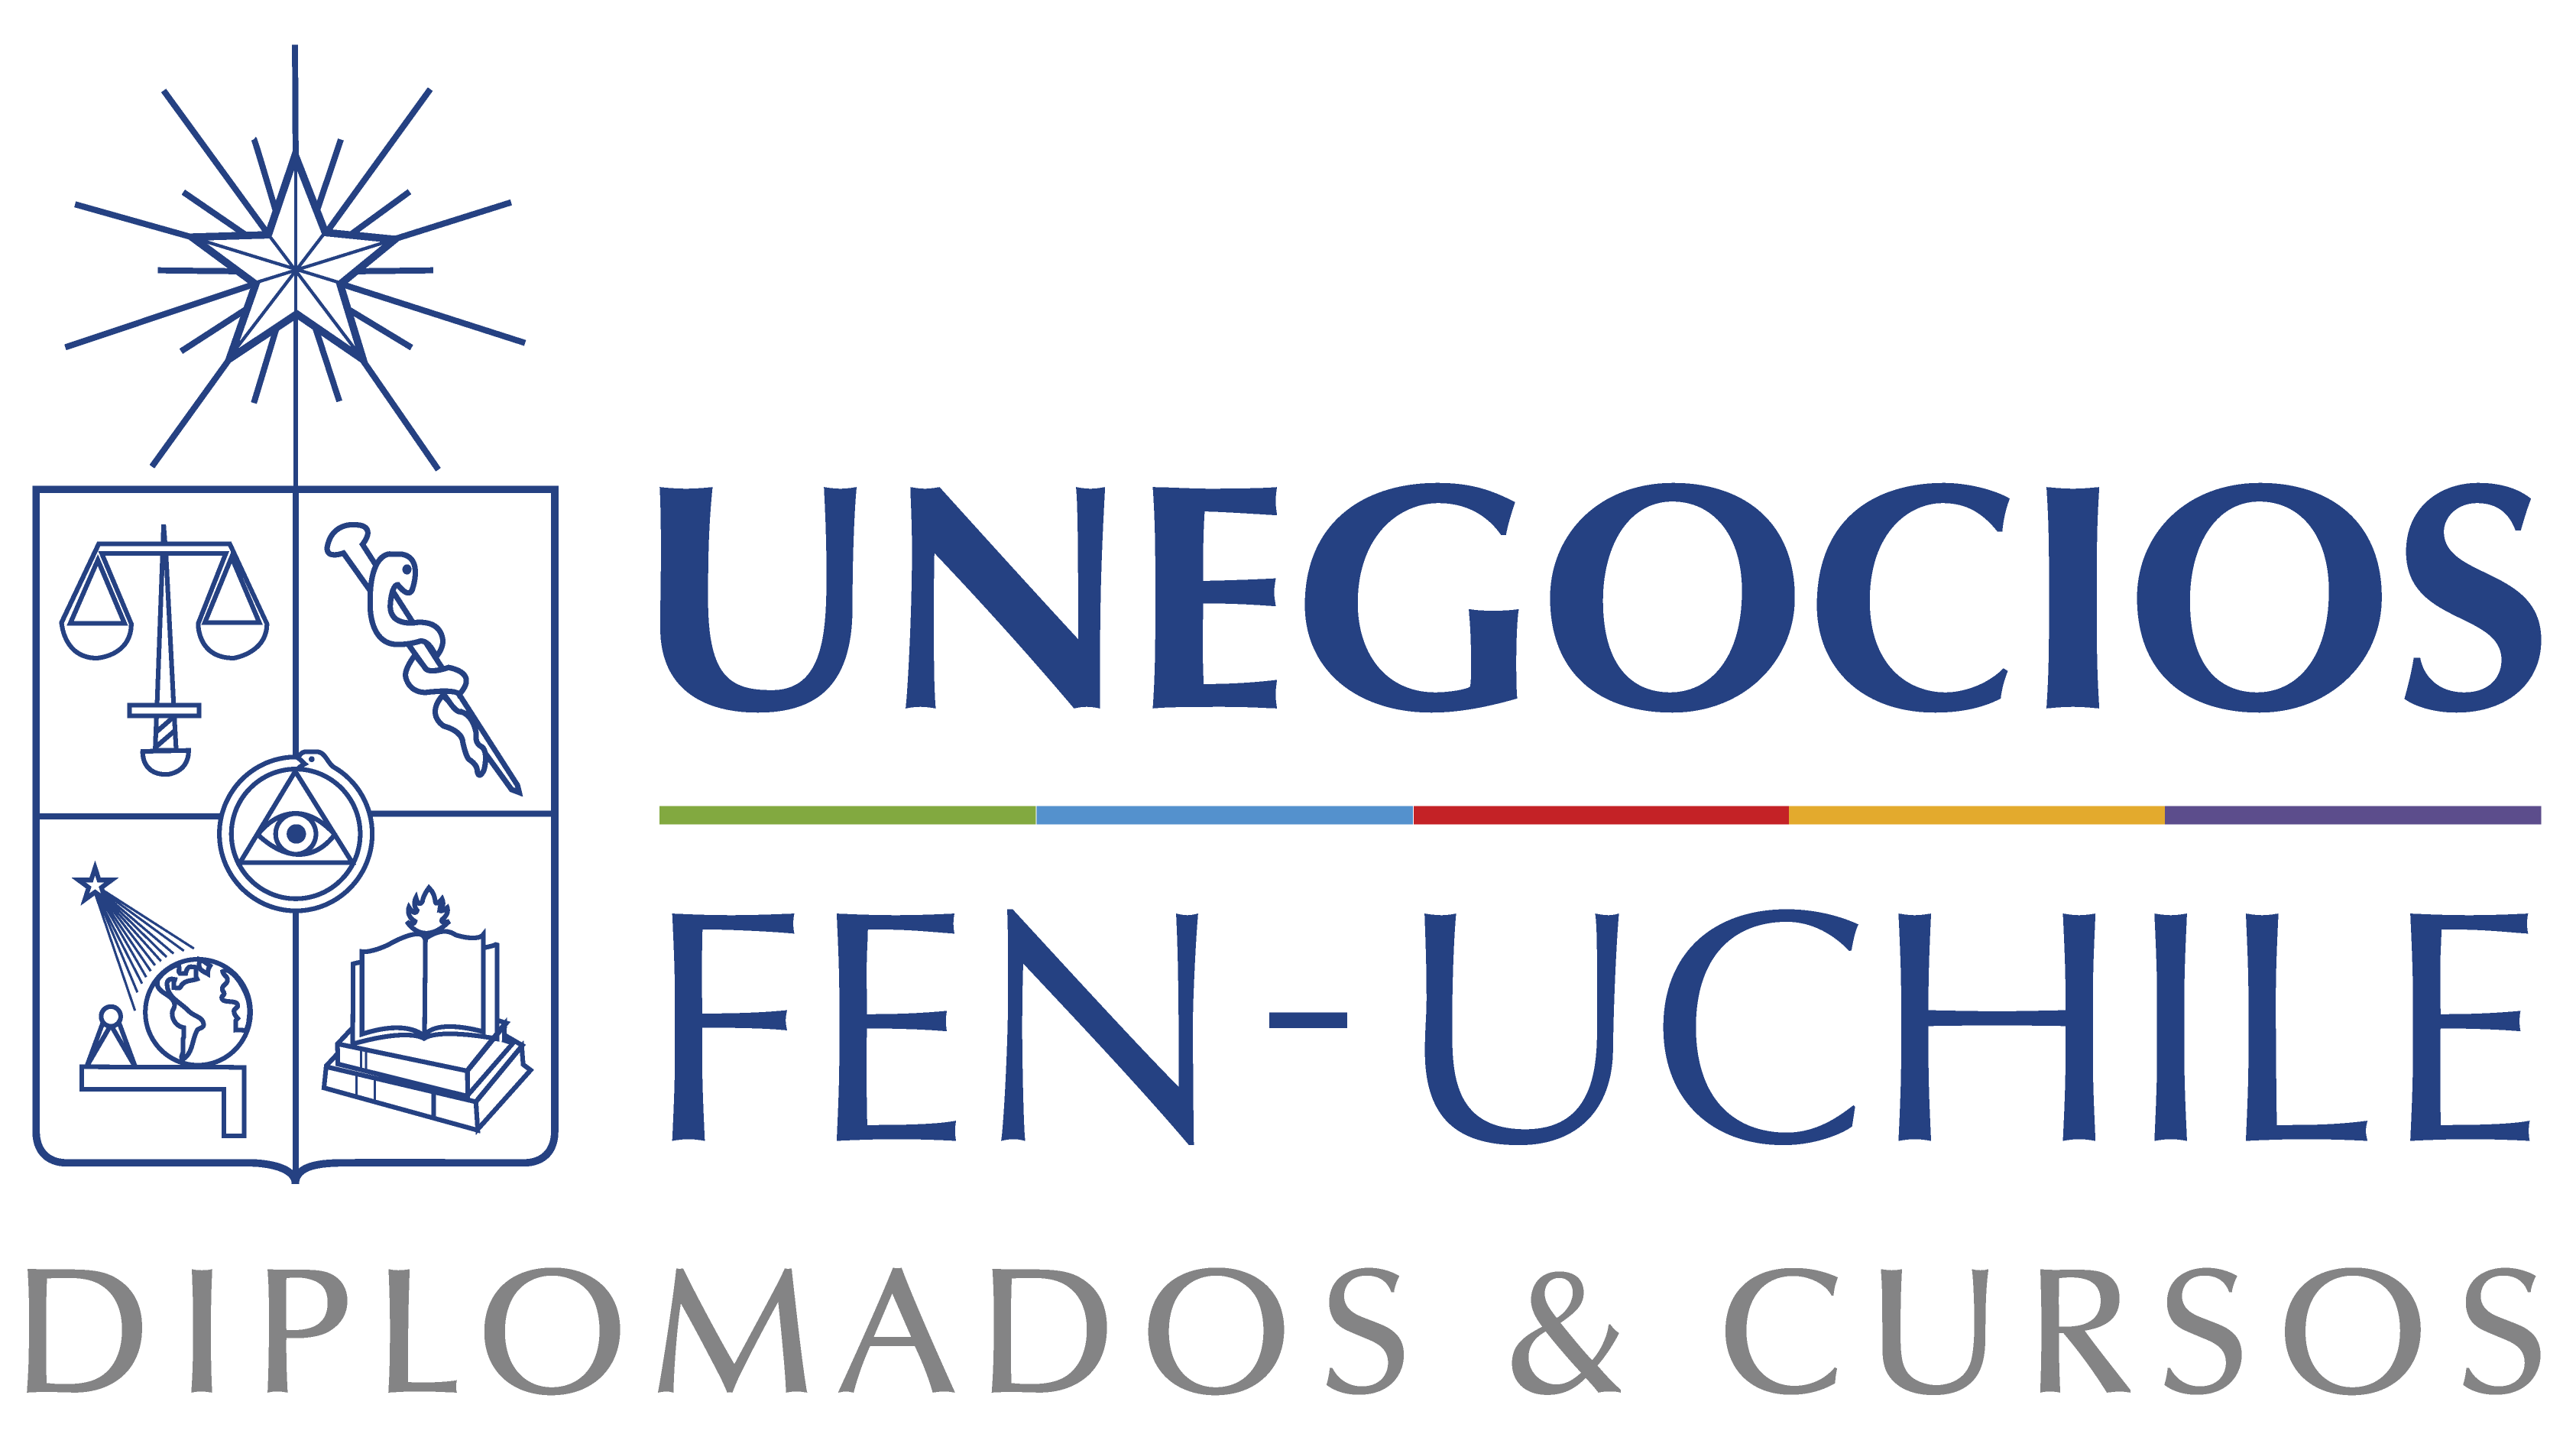 Unegocios Universidad de chile